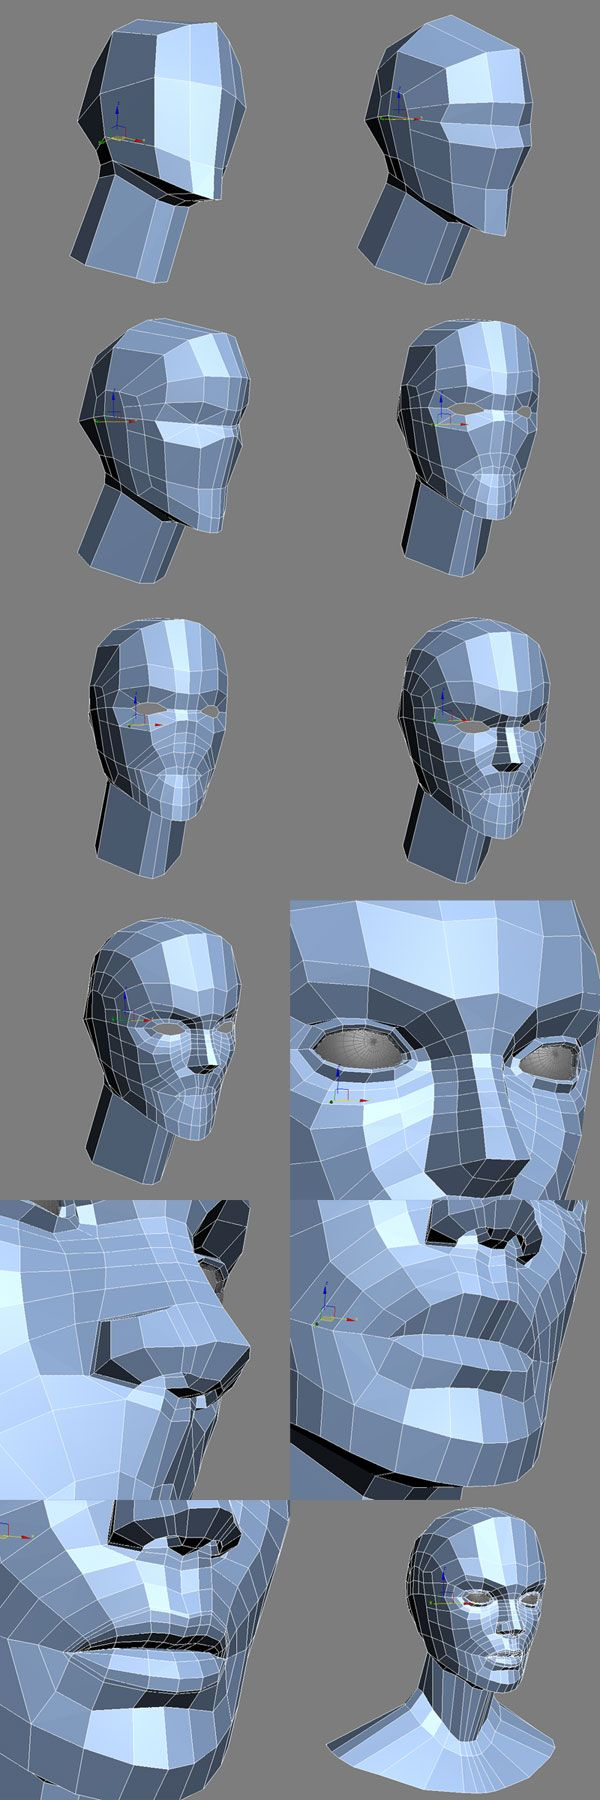 Another human head workflow